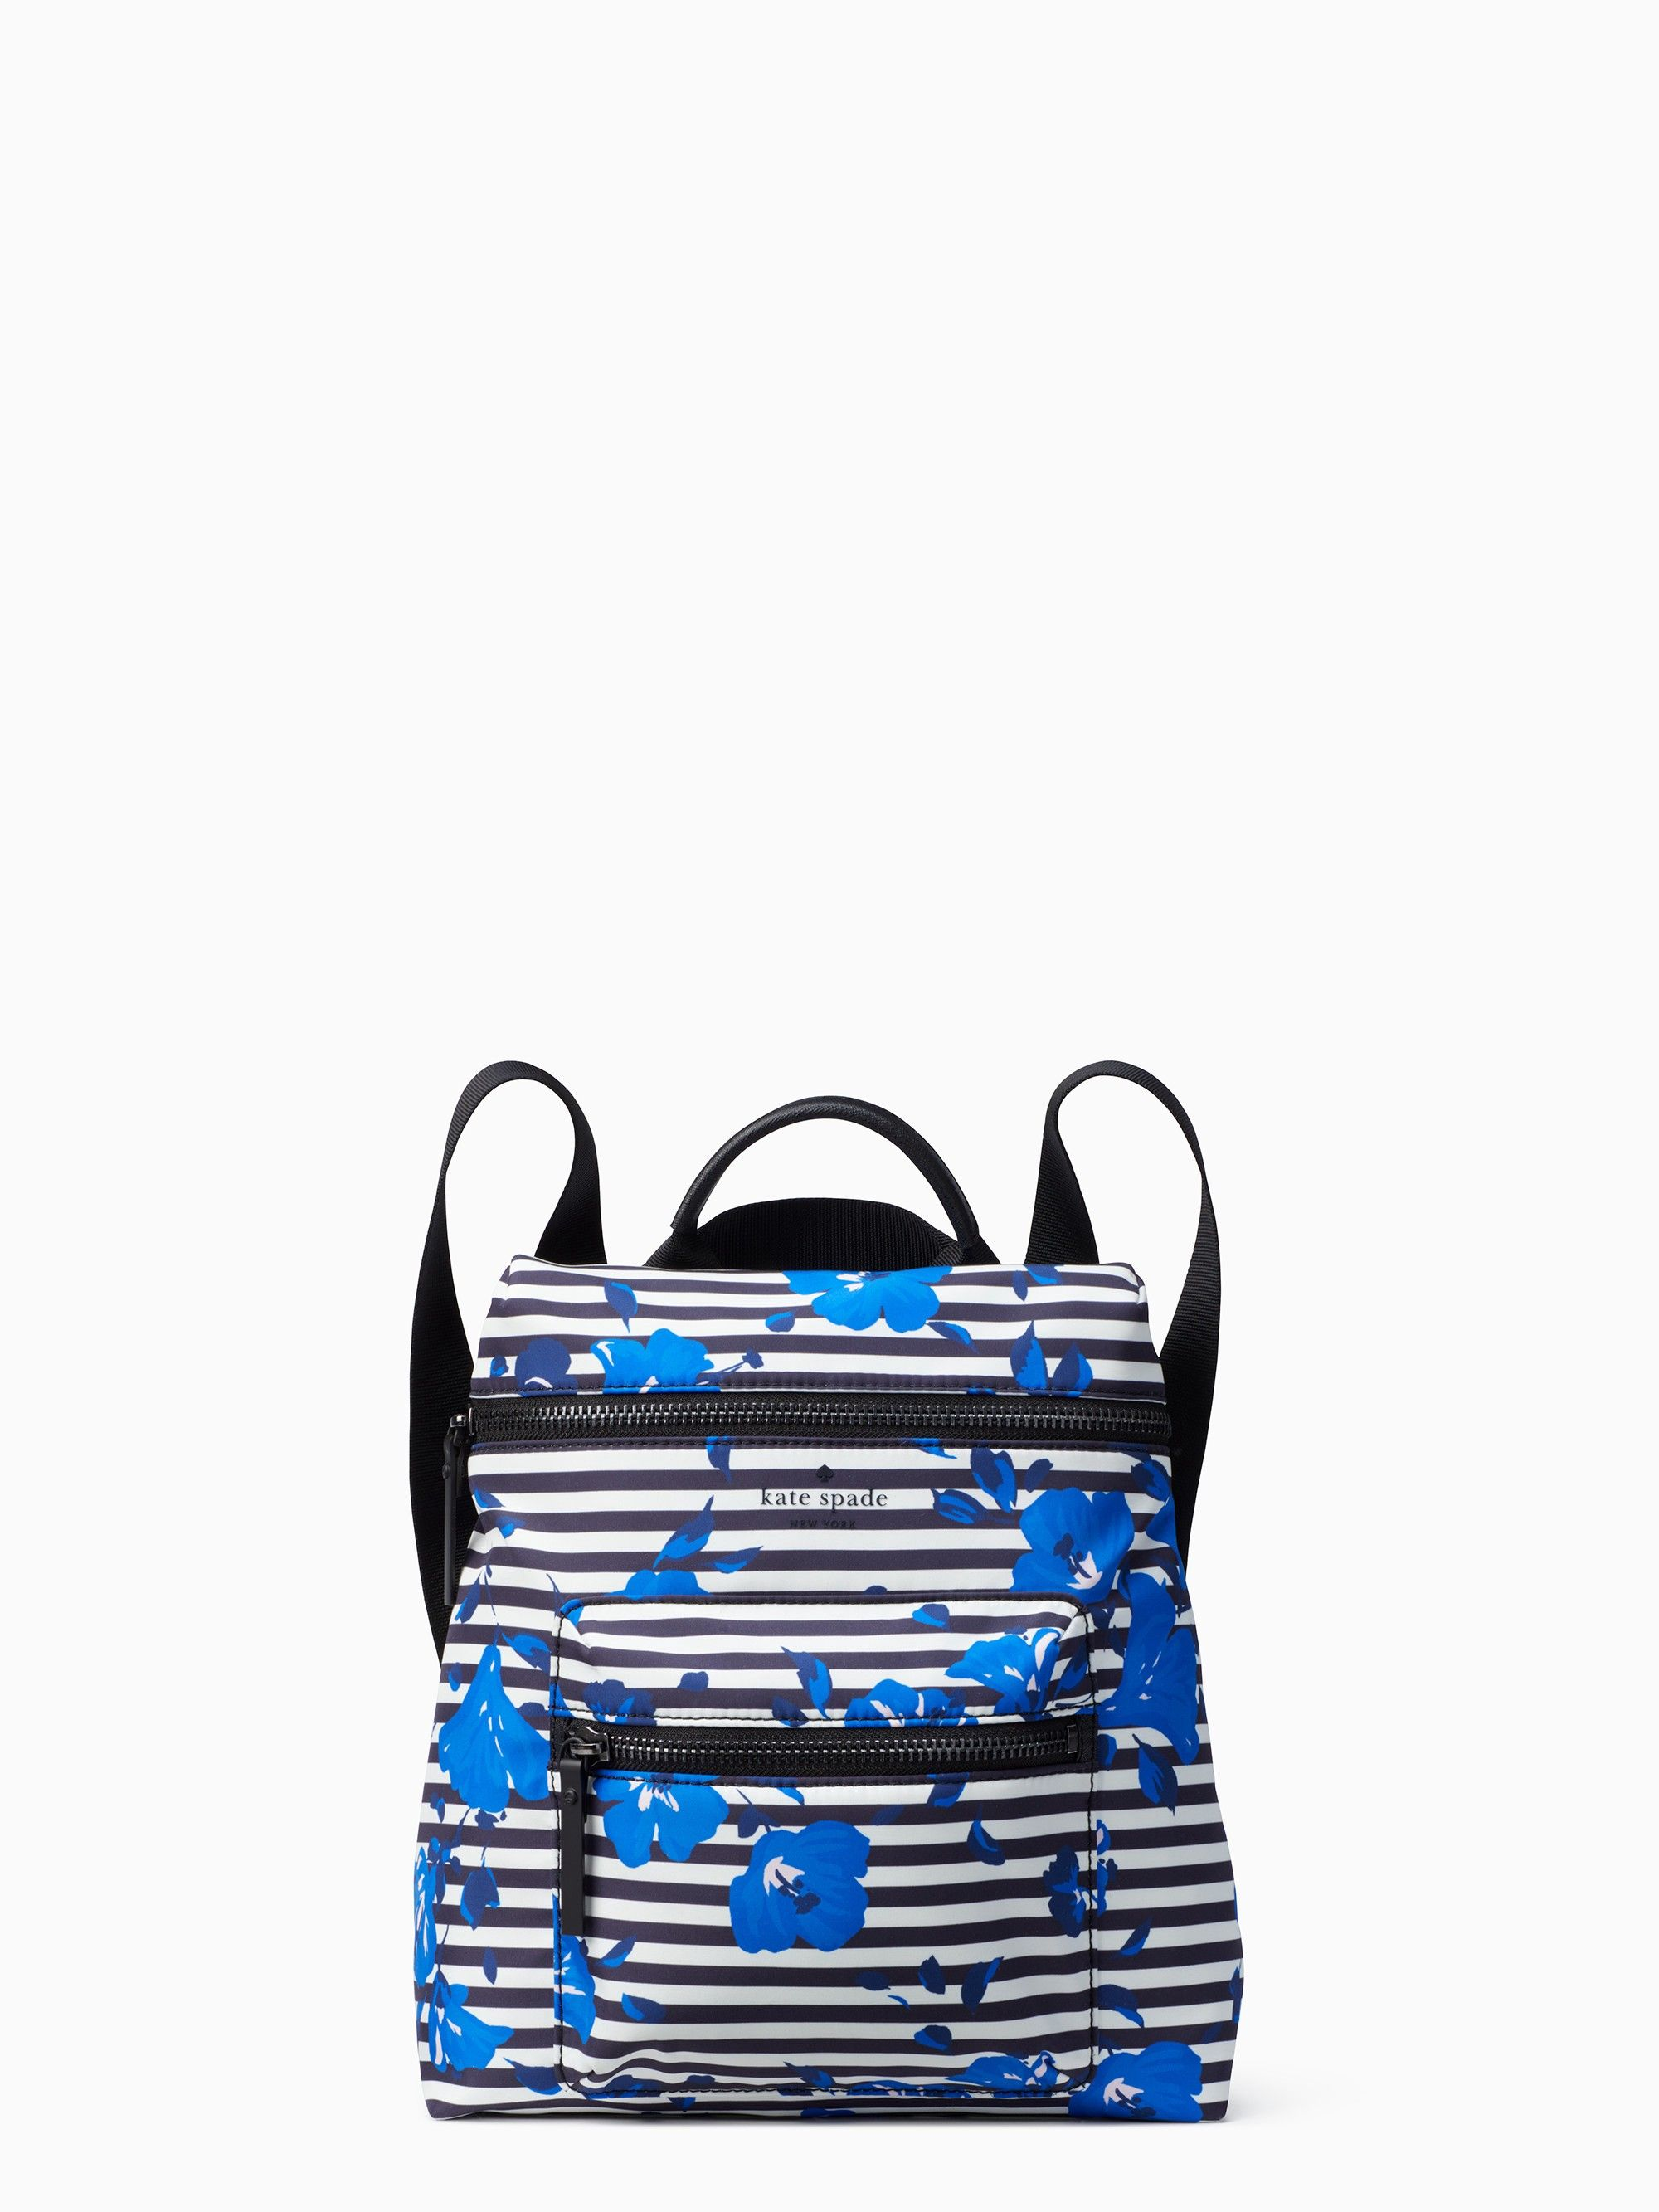 49b7491a4be1 Kate Spade That s The Spirit Convertible Backpack - Hibiscus Stripe ...